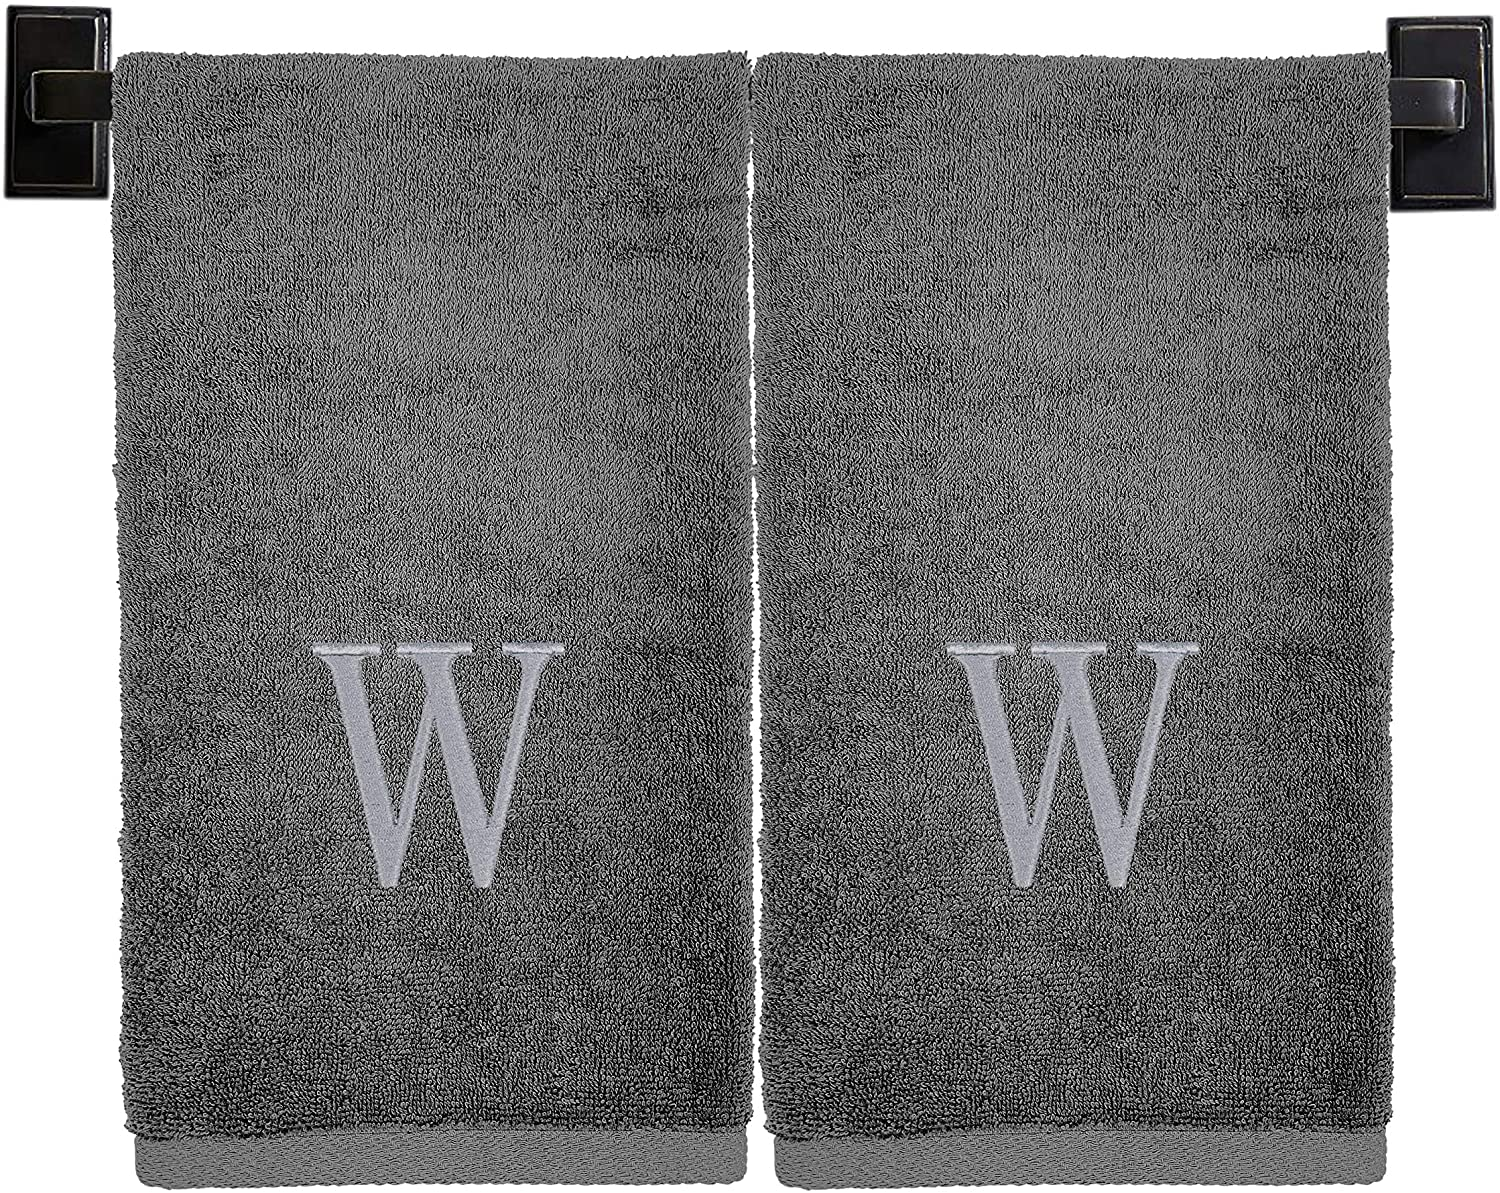 Custom Luxury Towels - Monogrammed Hand Towels, Set of 2, 100% Cotton, Made in USA, Luxury Hotel Quality, Embroidered Silver Thread Monogram